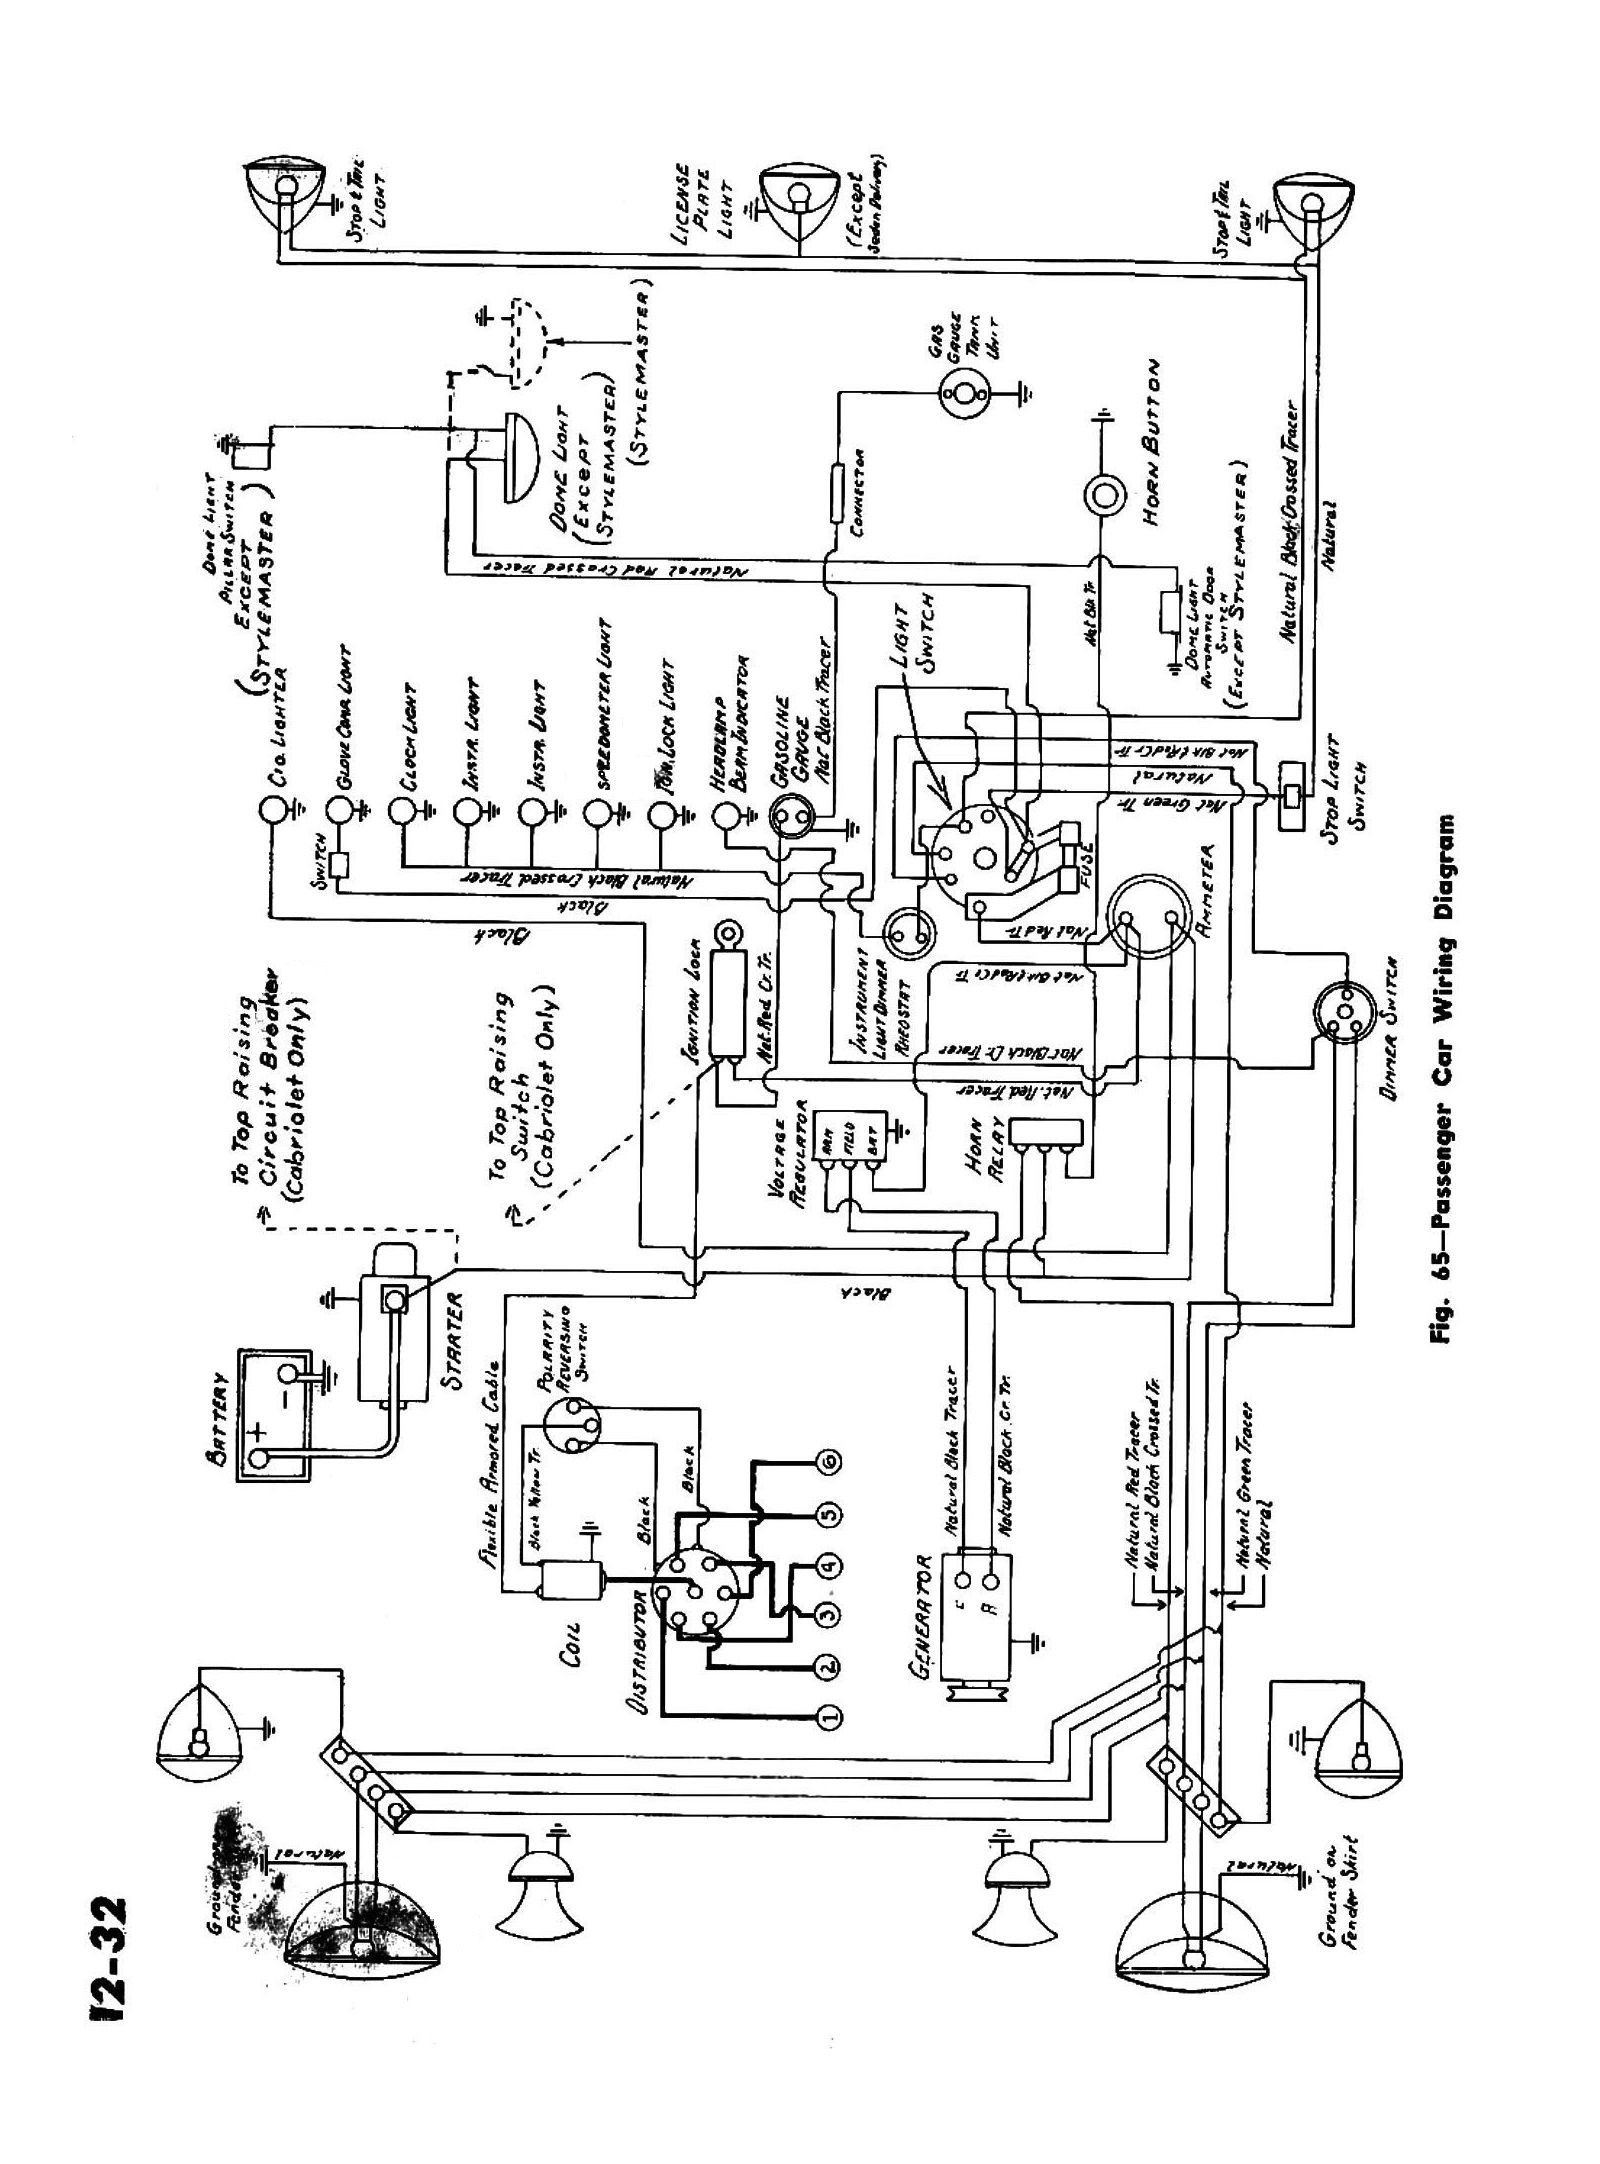 1953 Ford Wiring Diagram Pdf Library Data Module Free Download Schematic 1945 Passenger Car